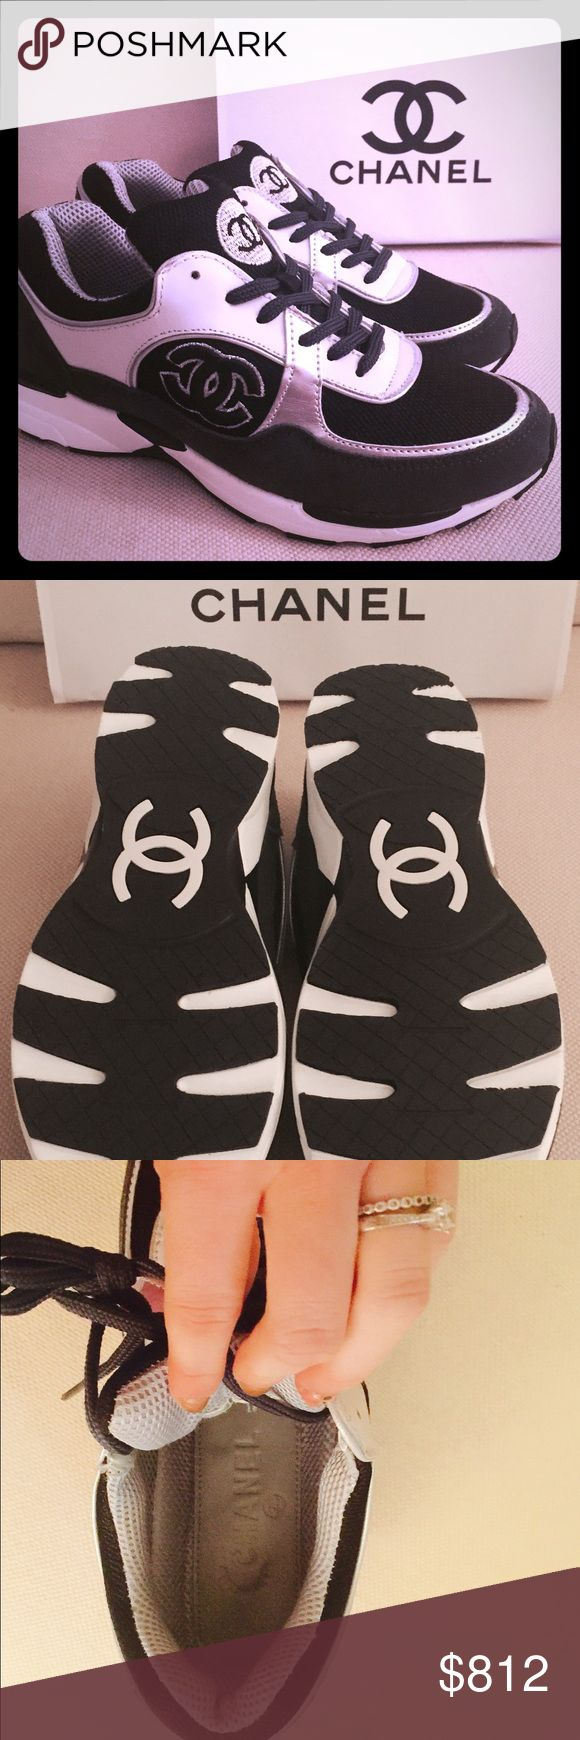 Luxury Chanel tennis shoes New/excellent condition. Work once but they run small and I don't quite fit into them. Has a cool green  and metalic looking color to them in certain lighting CHANEL Shoes Athletic Shoes